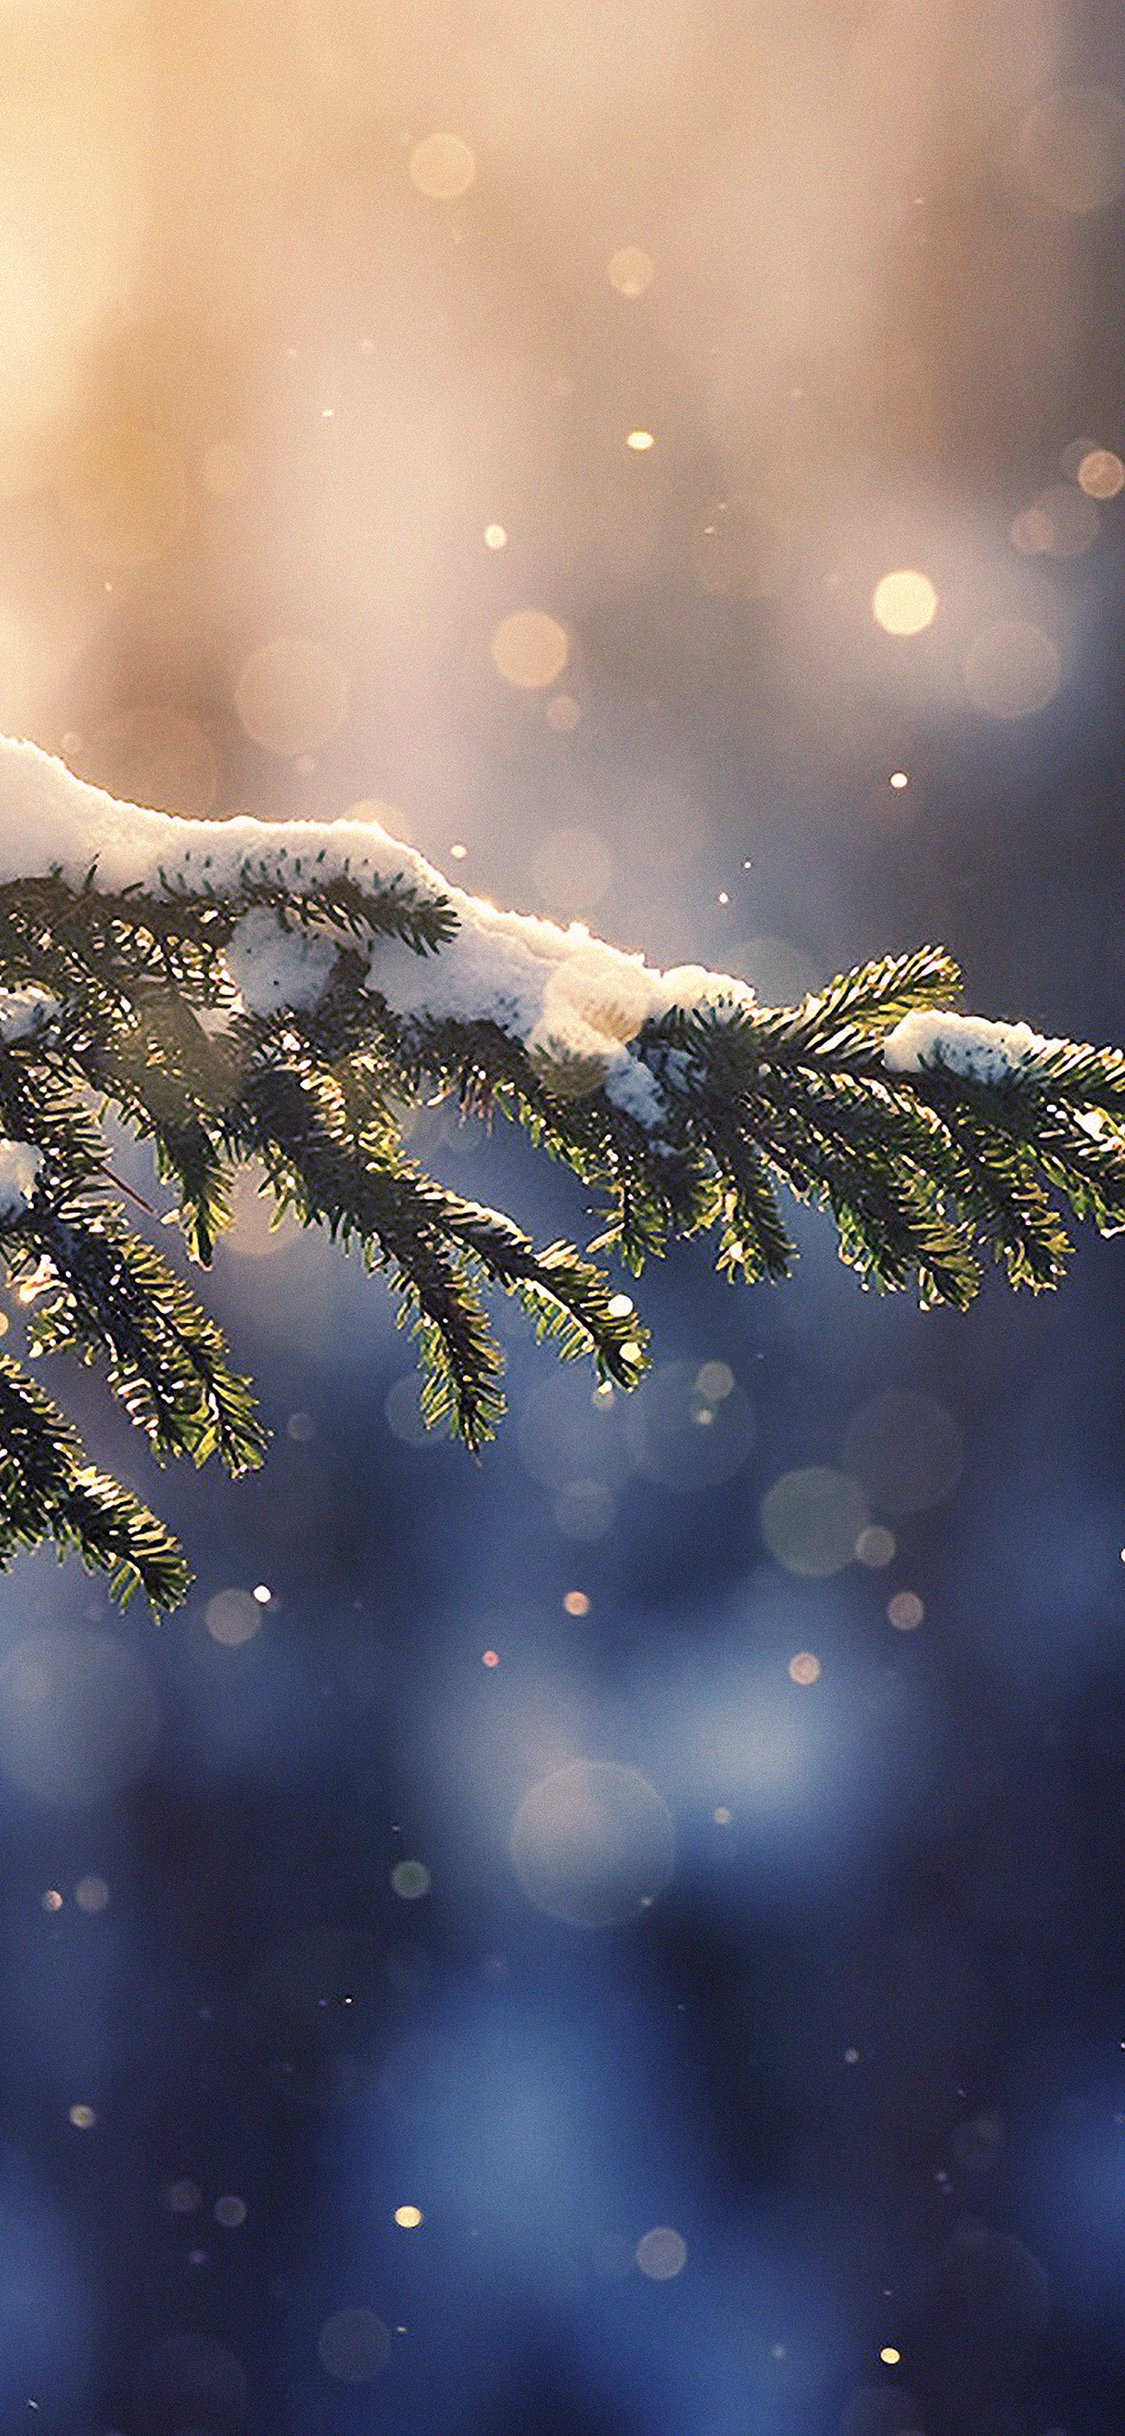 Iphone X Winter Backgrounds   1125x2436   Download HD Wallpaper 1125x2436